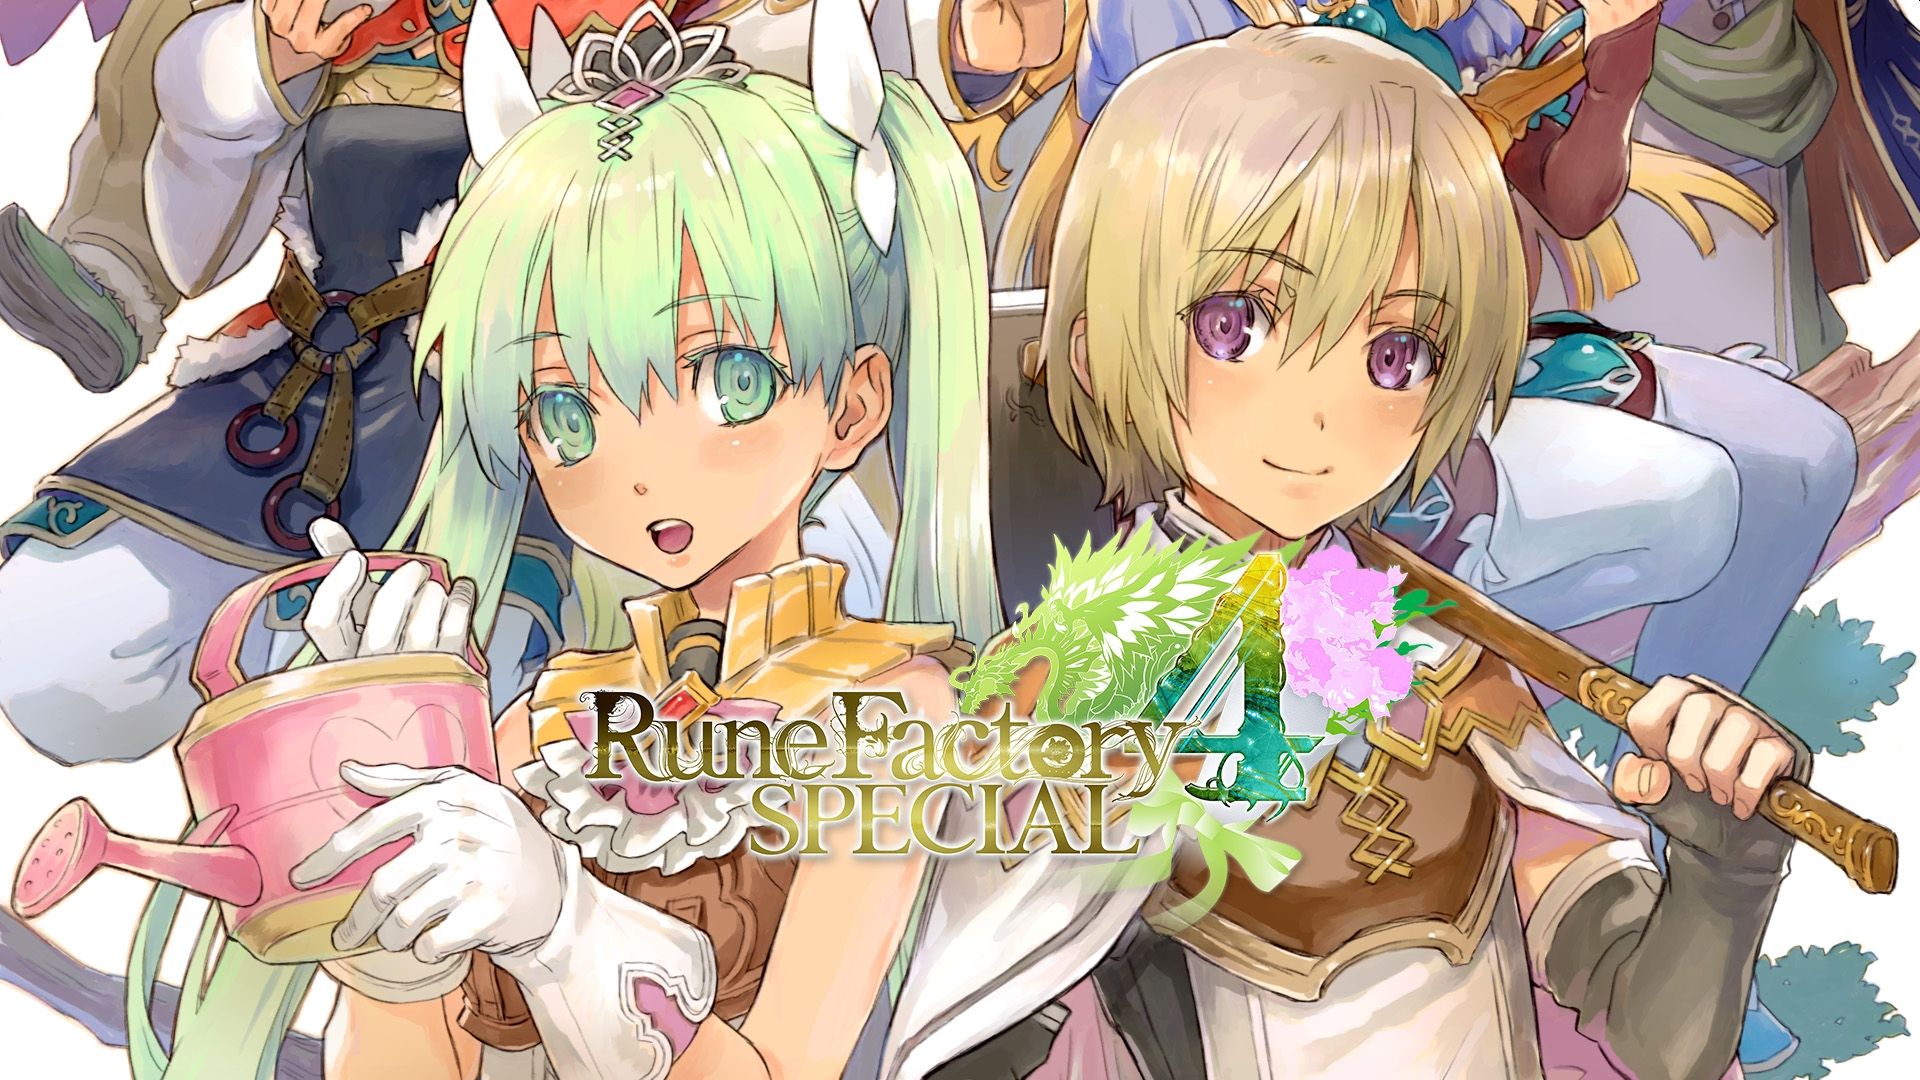 Rune Factory 4 Special Honored In Common Sense Selections For Video Games